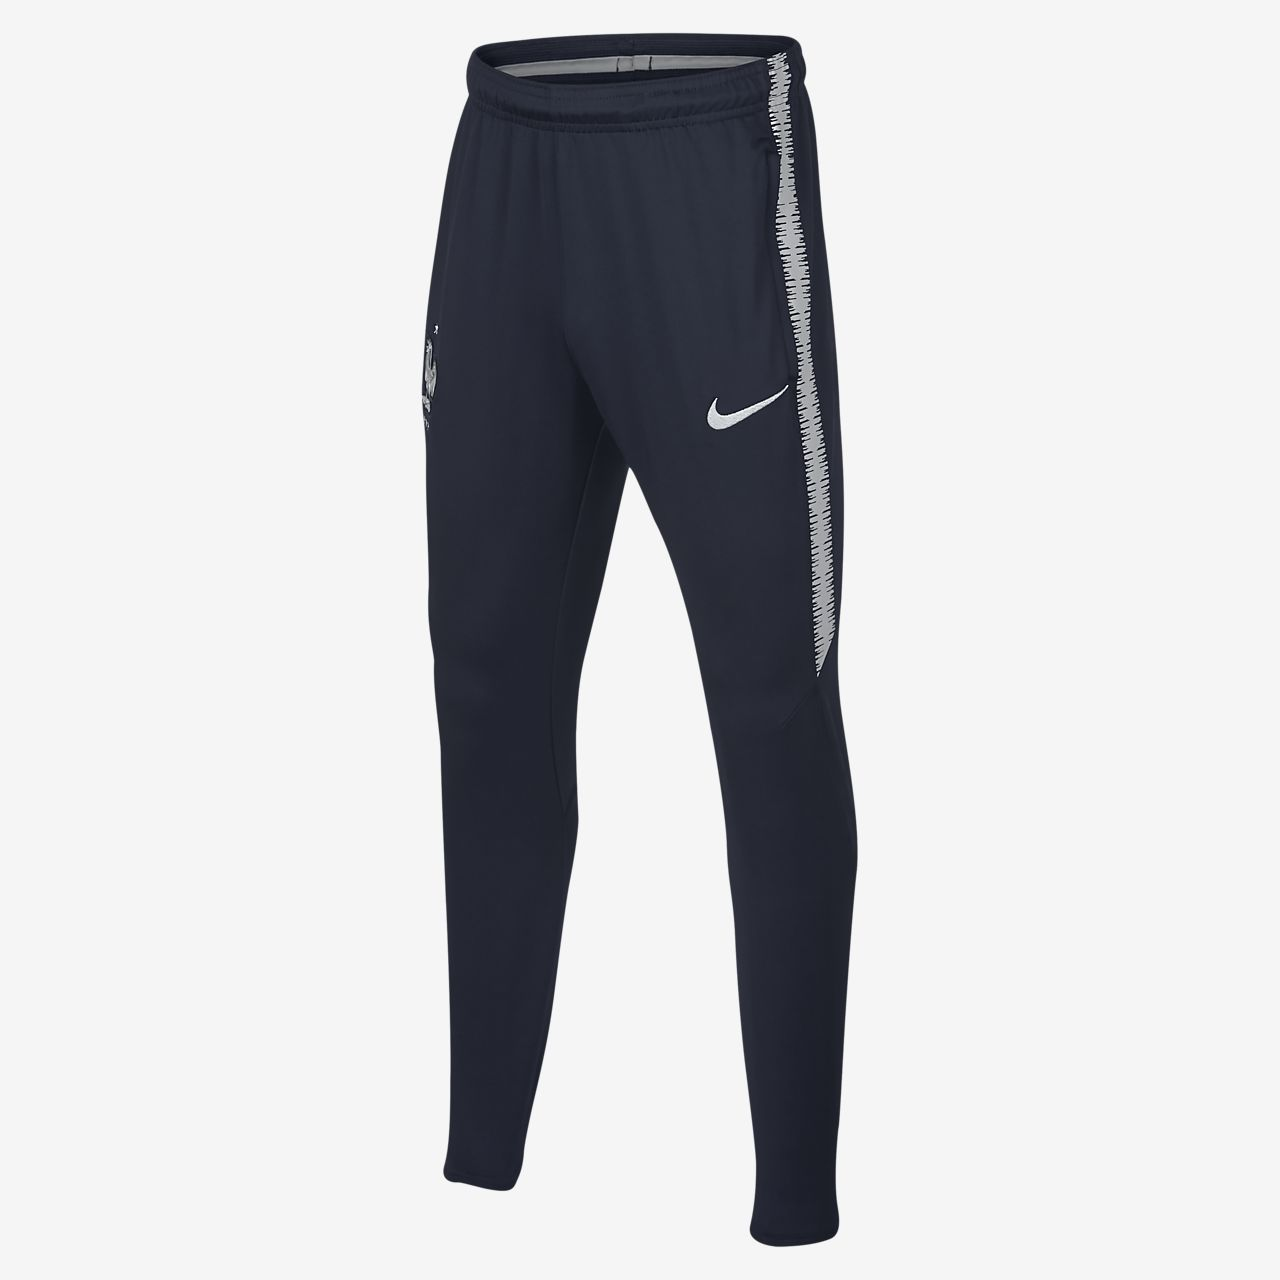 Nike Youth Dry Squad Football Pants